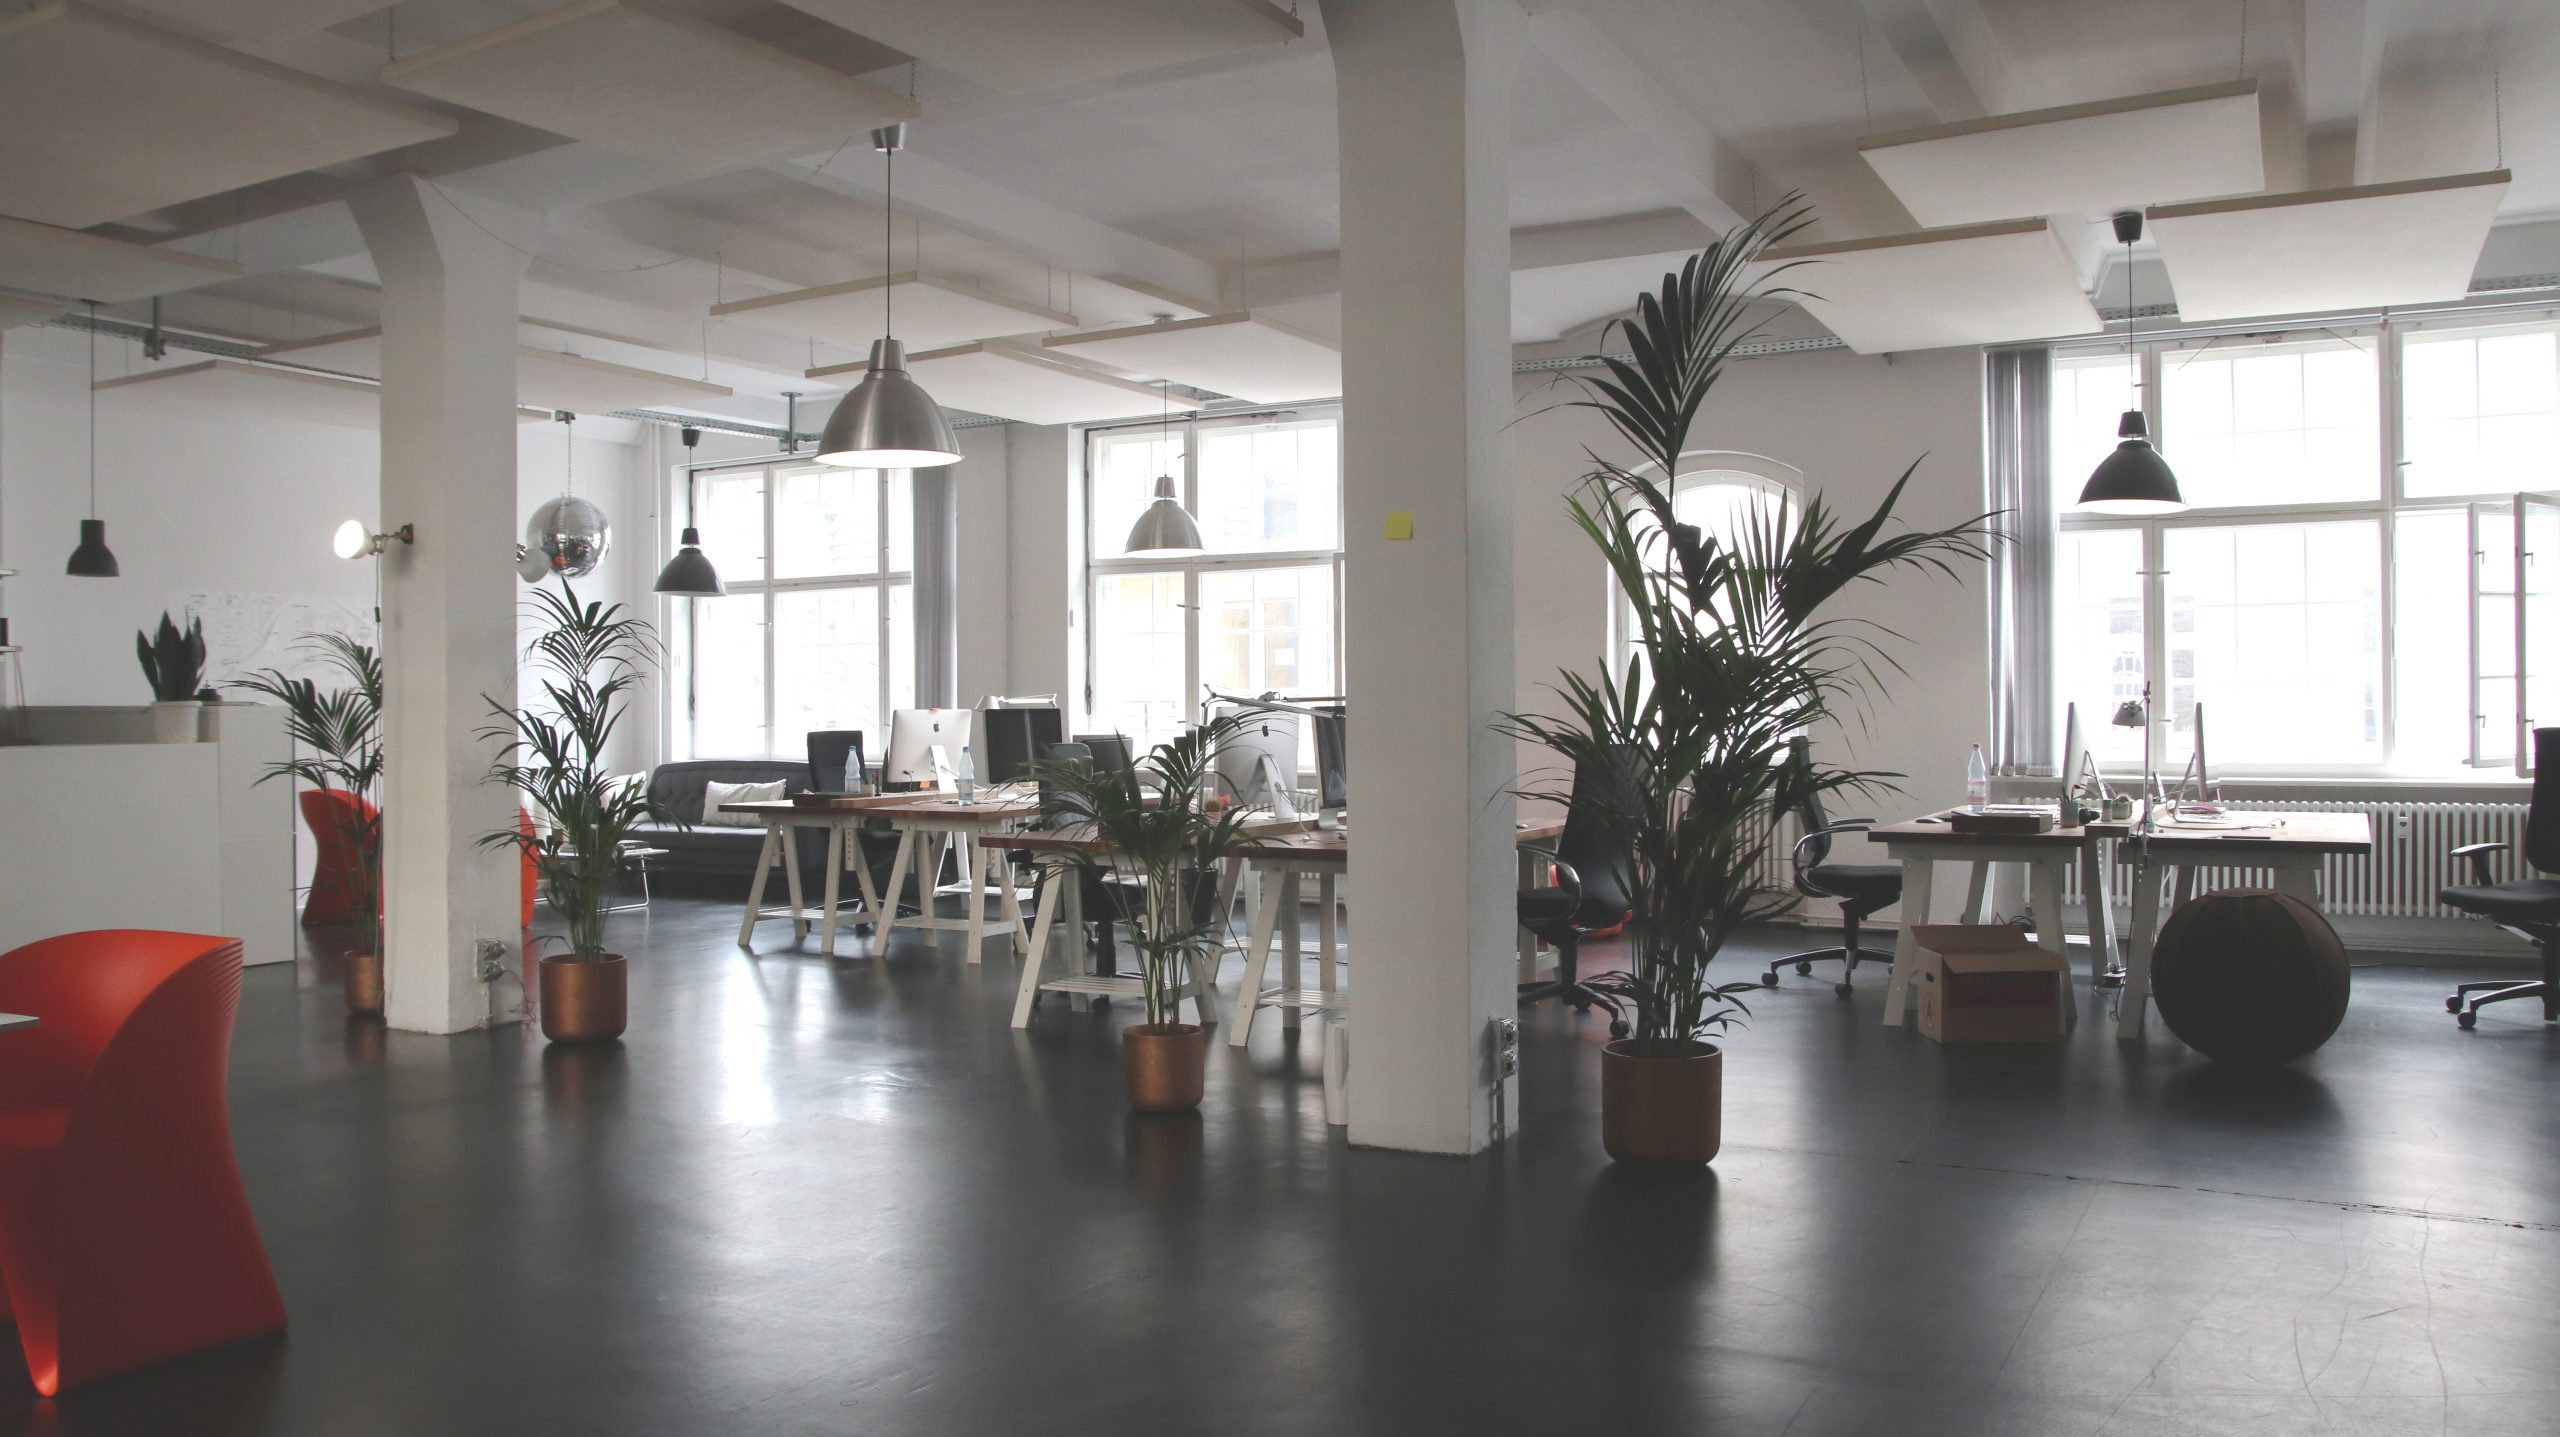 How to Safely Transition Your Employees Back to the Office in the COVID Era